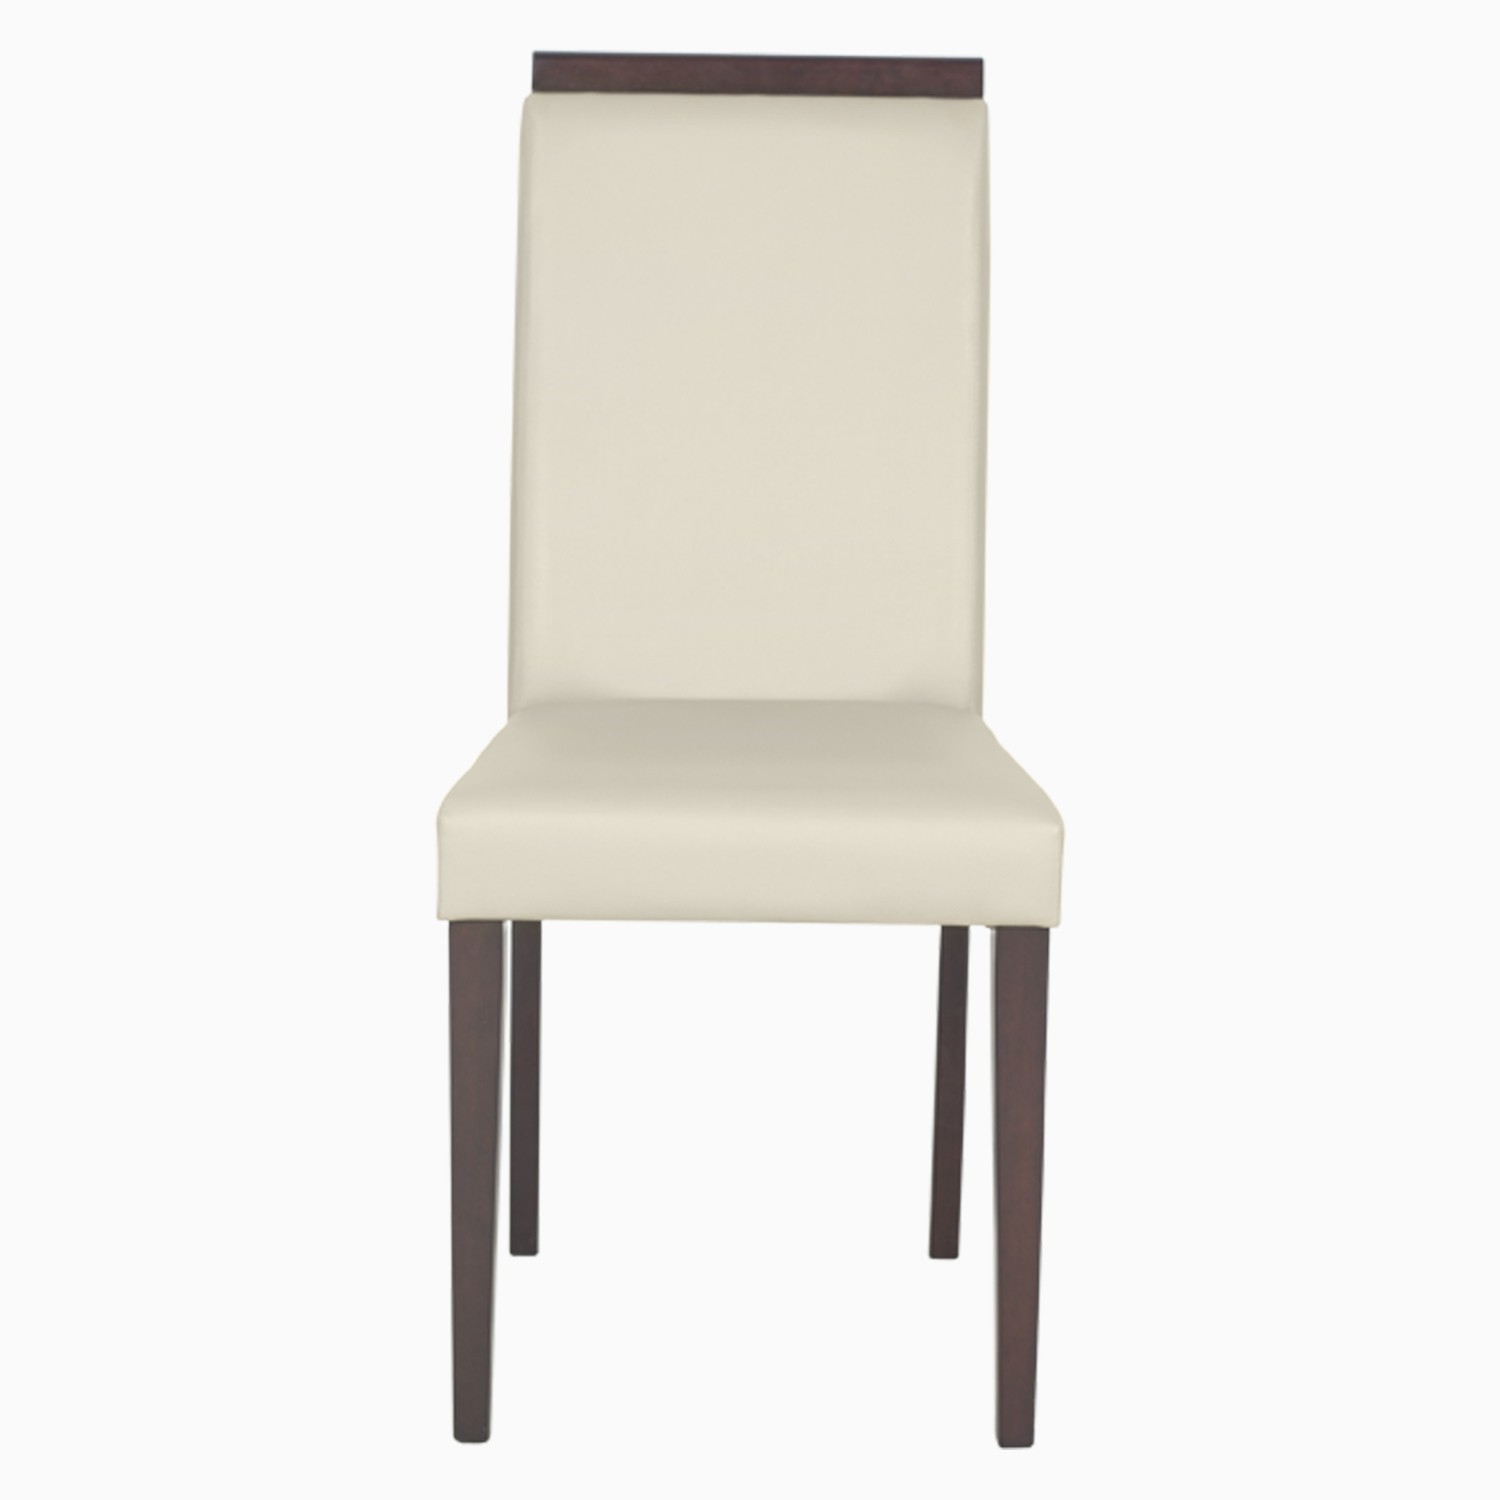 Godrej Interio ROSE DINING CHAIR Solid Wood Dining Chair